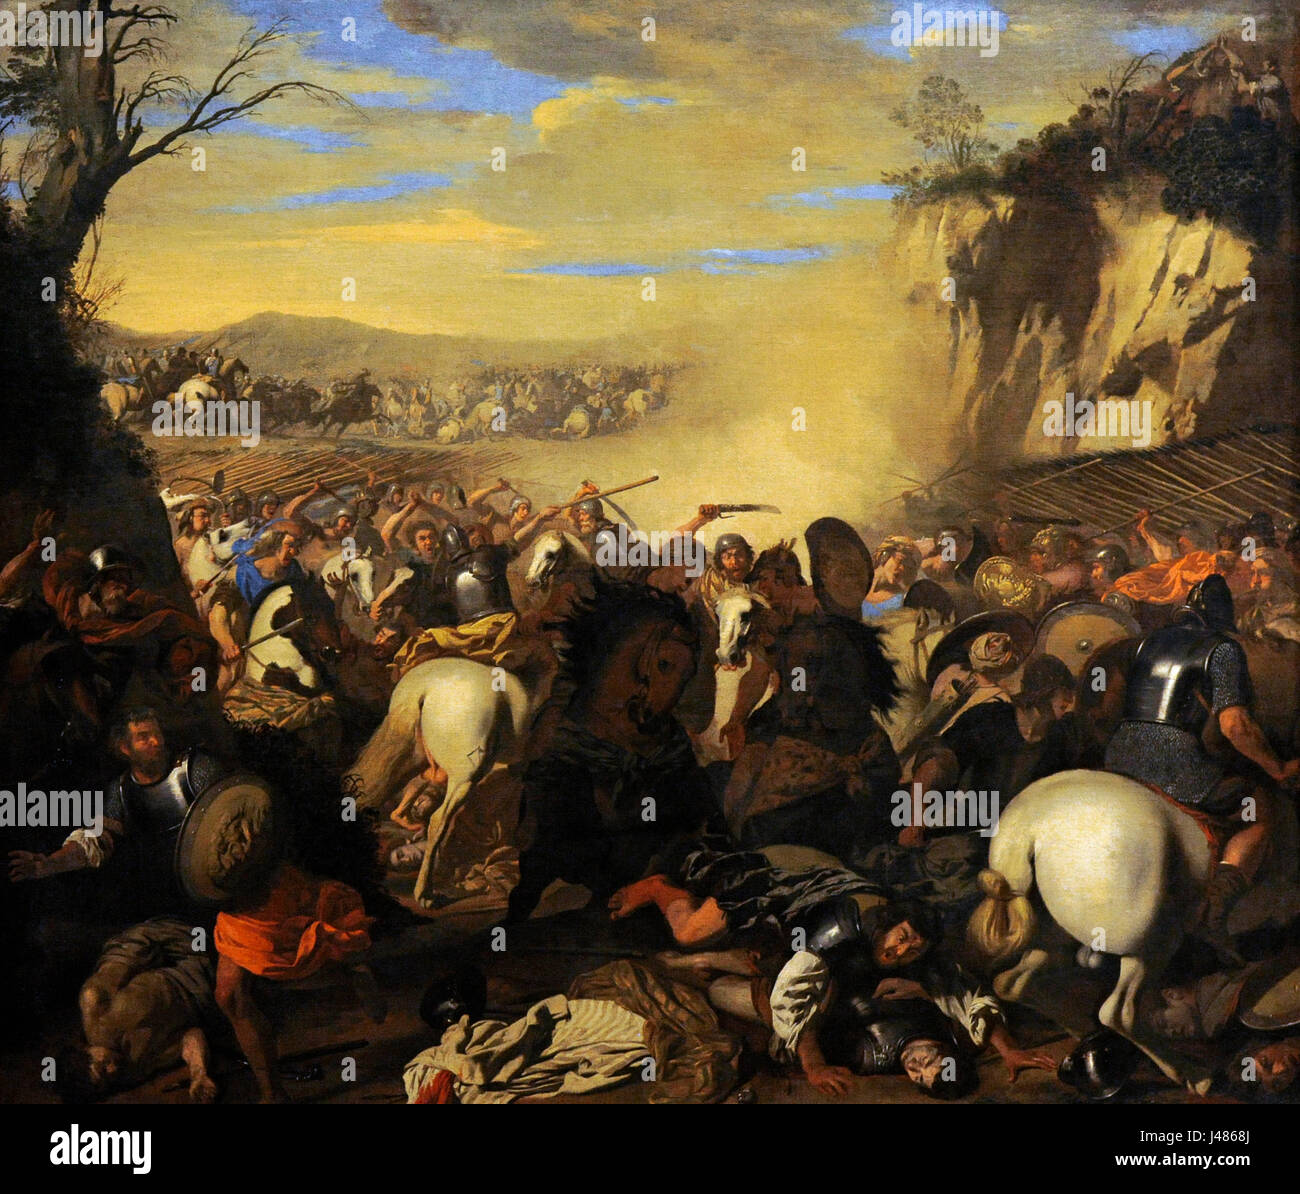 Aniello Falcone (1607-1656). Baroque italian painter. Battle against  amaleks and jews, 1640-45. National Museum of Capodimonte. Naples. Italy.